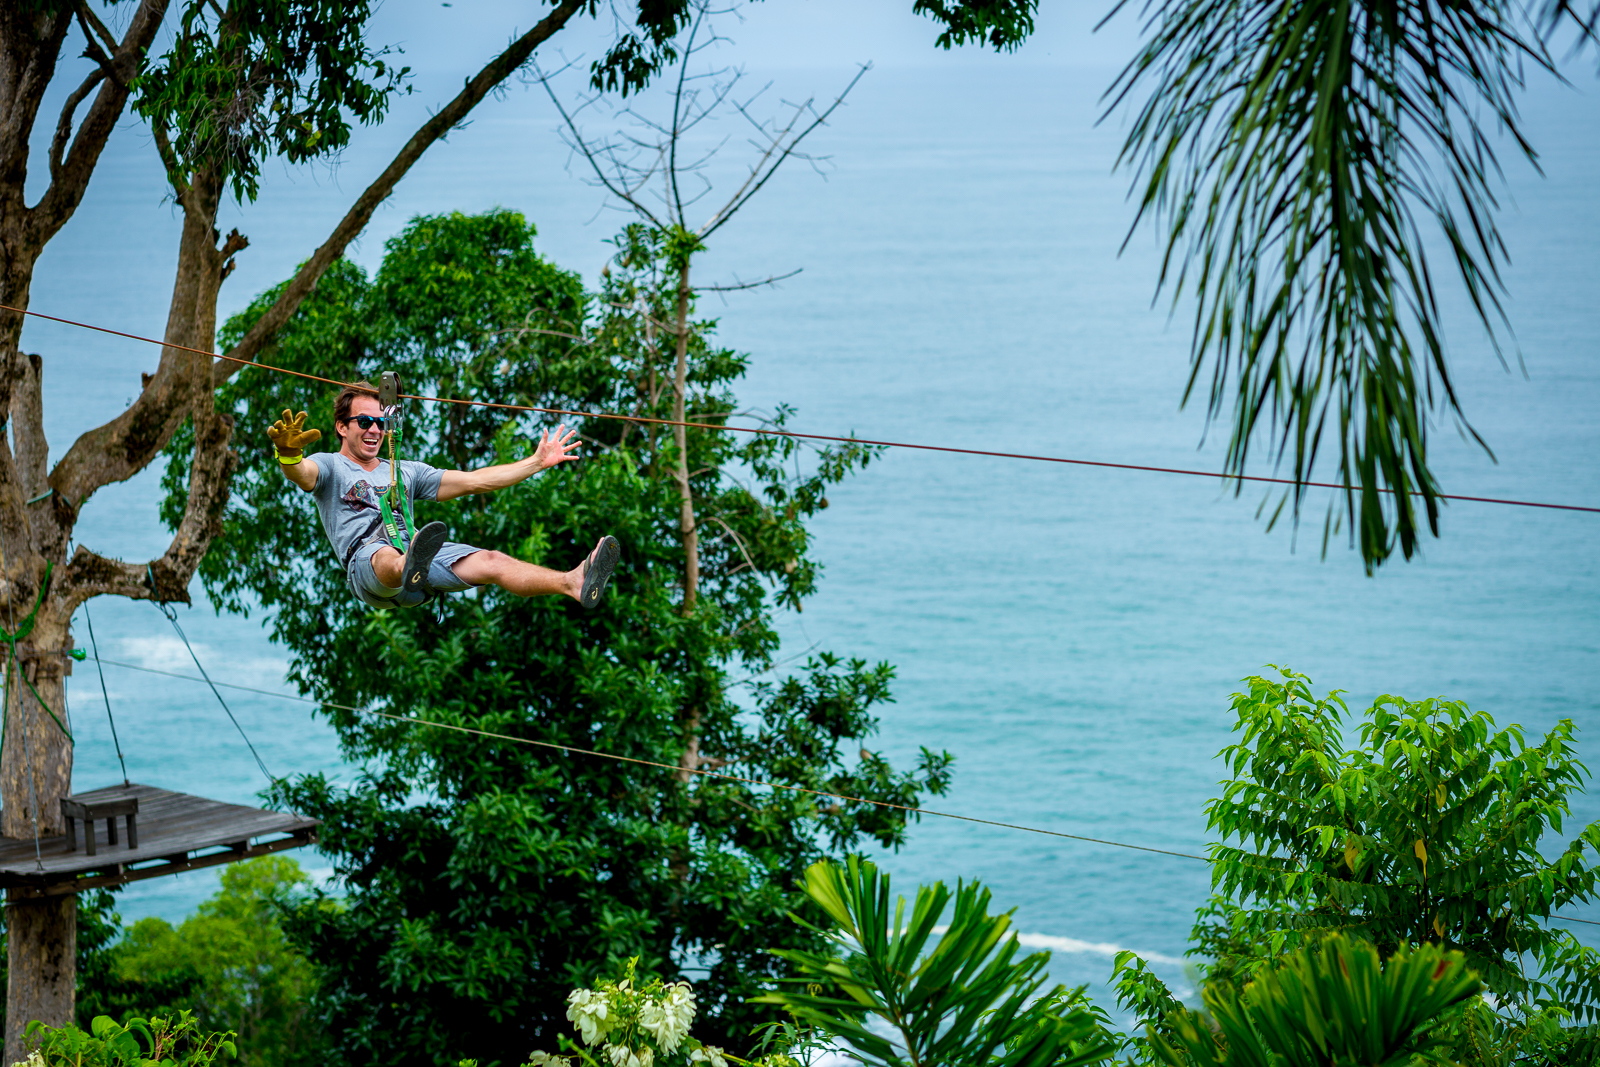 Zipline in the area